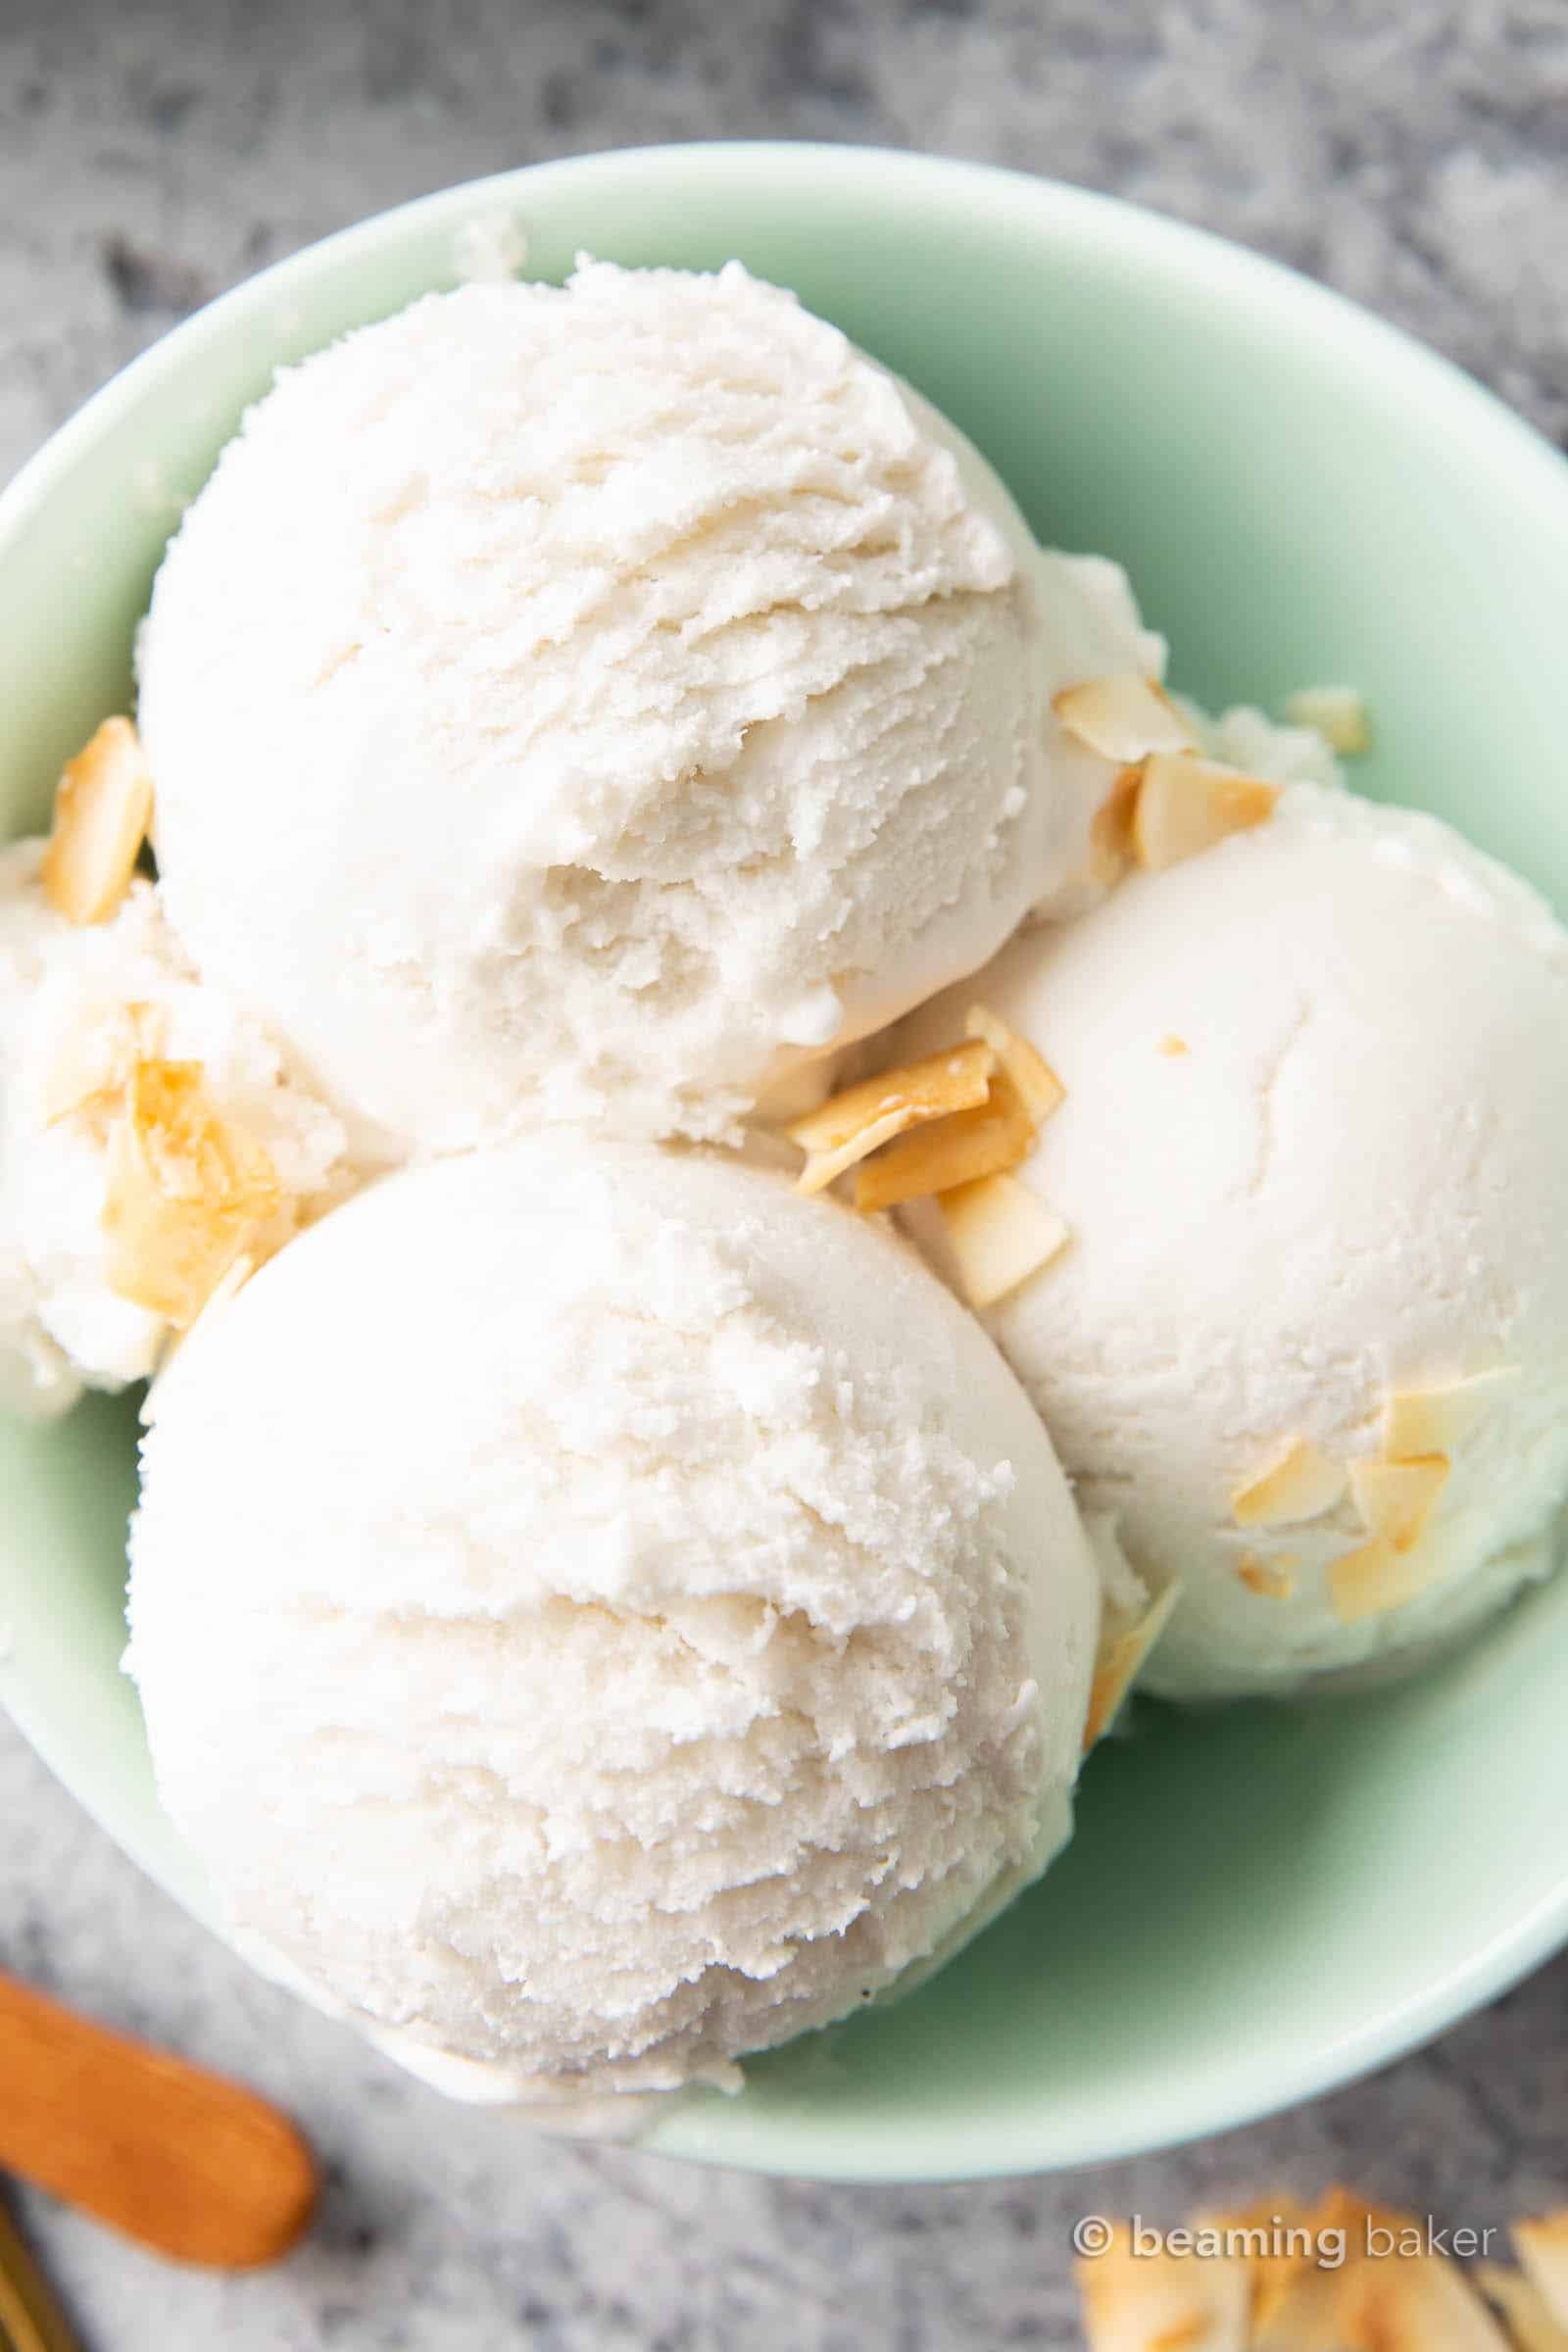 Coconut Milk Keto Ice Cream (Keto, Low Carb): this 6 ingredient keto coconut ice cream is rich, creamy and easy to make! The best keto friendly ice cream: bursting with coconut flavor, perfect for an ice cream maker and Low Carb. #Keto #KetoFriendly #LowCarb #DairyFree | Recipe at BeamingBaker.com